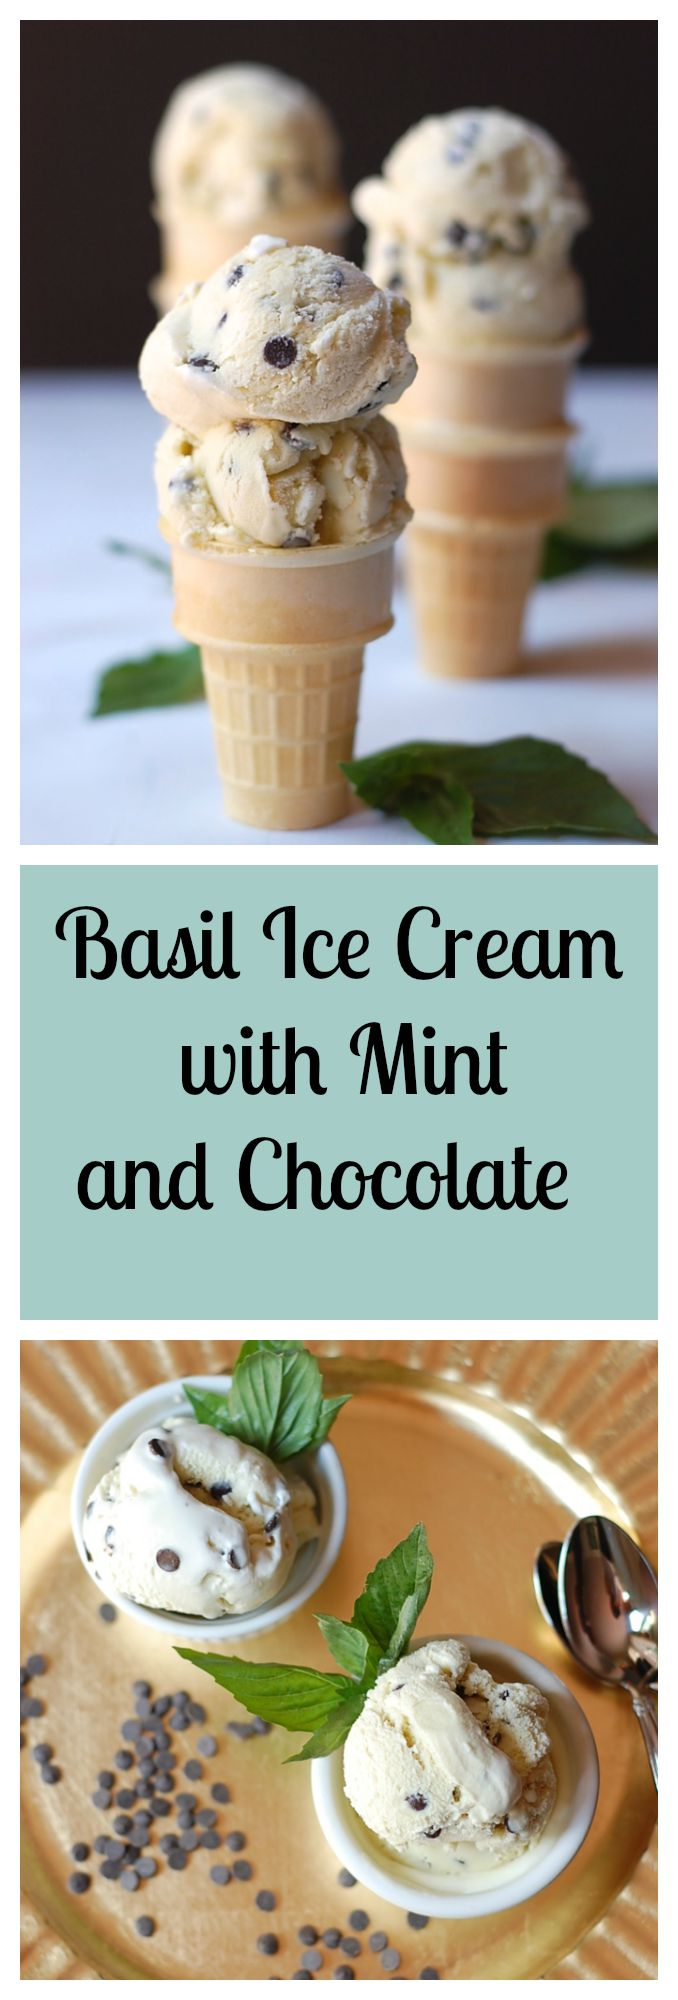 Basil Ice Cream with Mint and Chocolate recipe